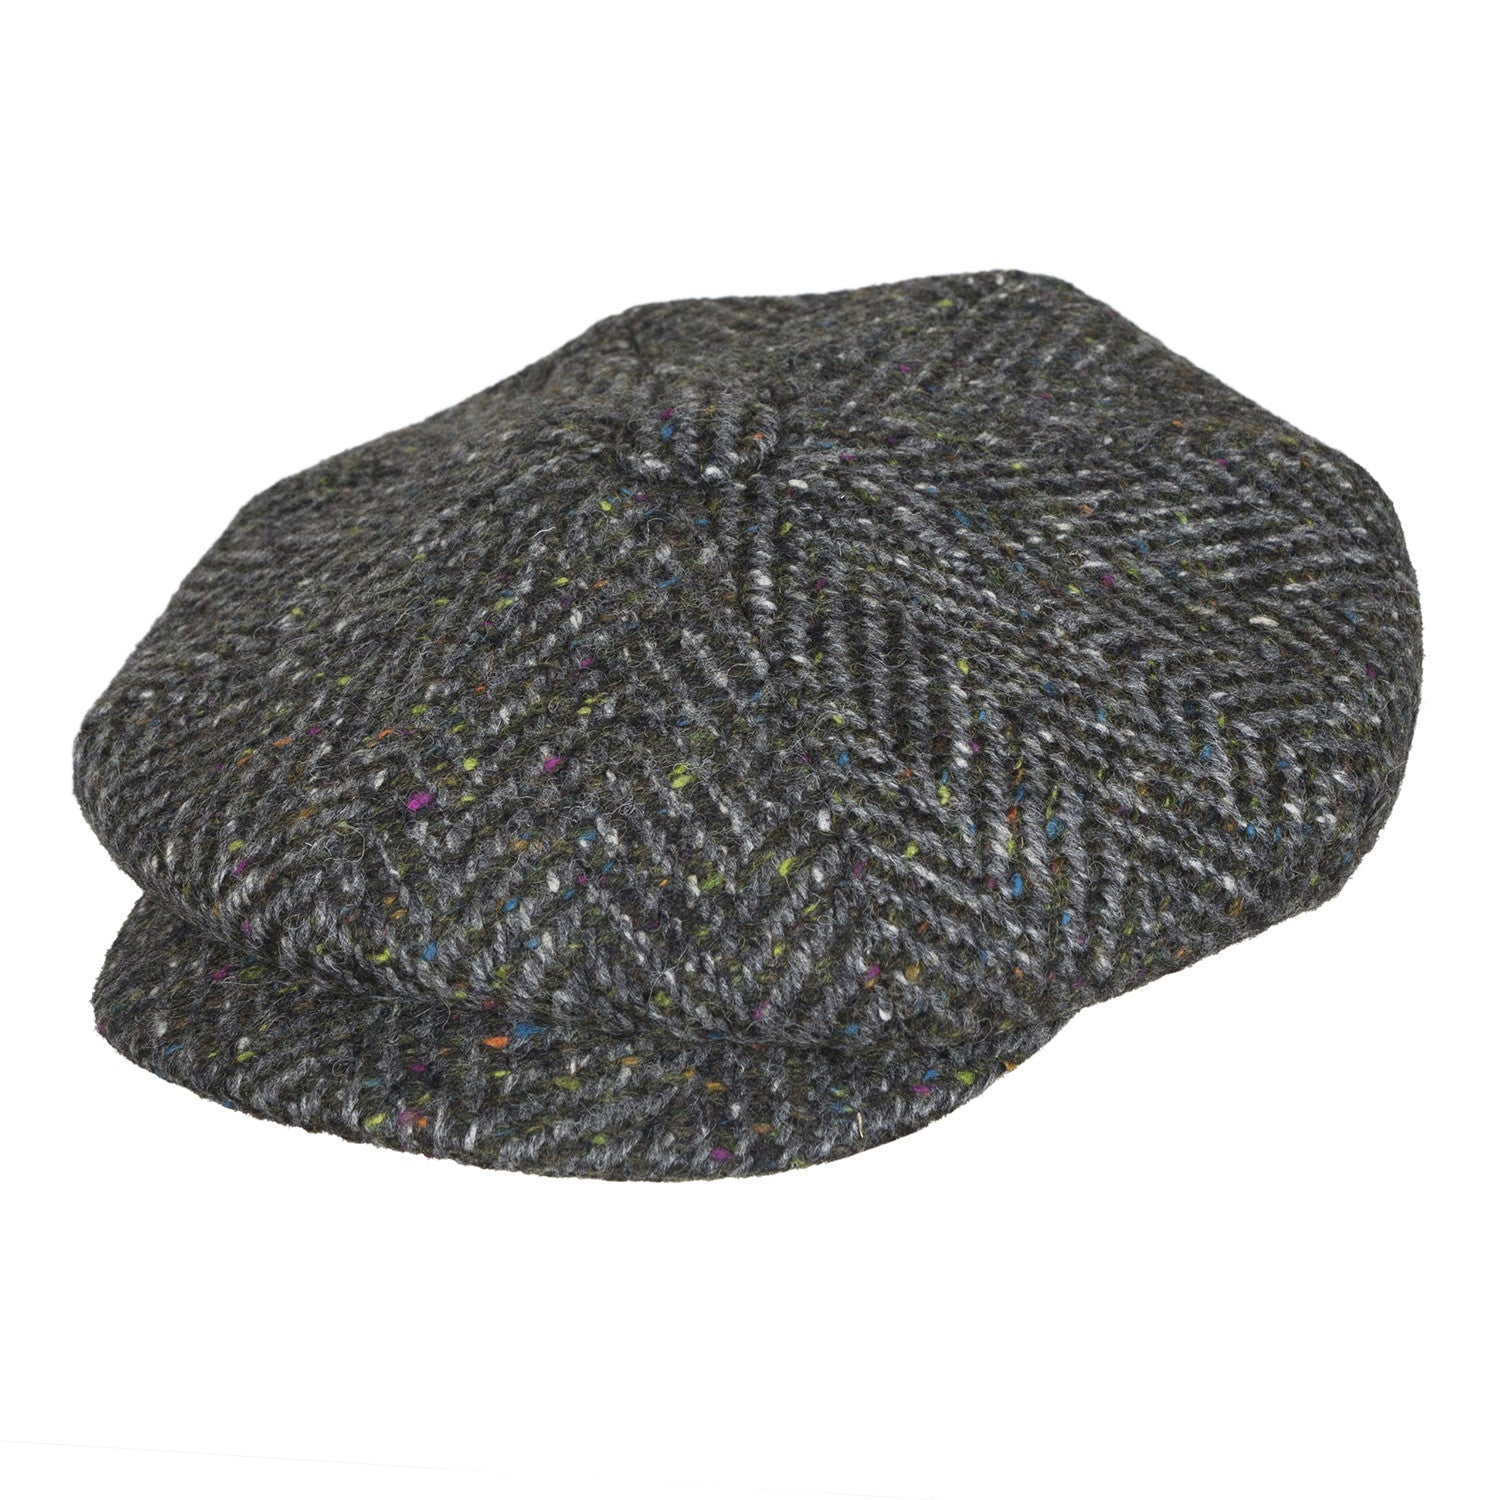 City Sport - Donegal Tweed 8 Piece Baker Boy Cap - Charocoal Grey ... 9c349ad9774e